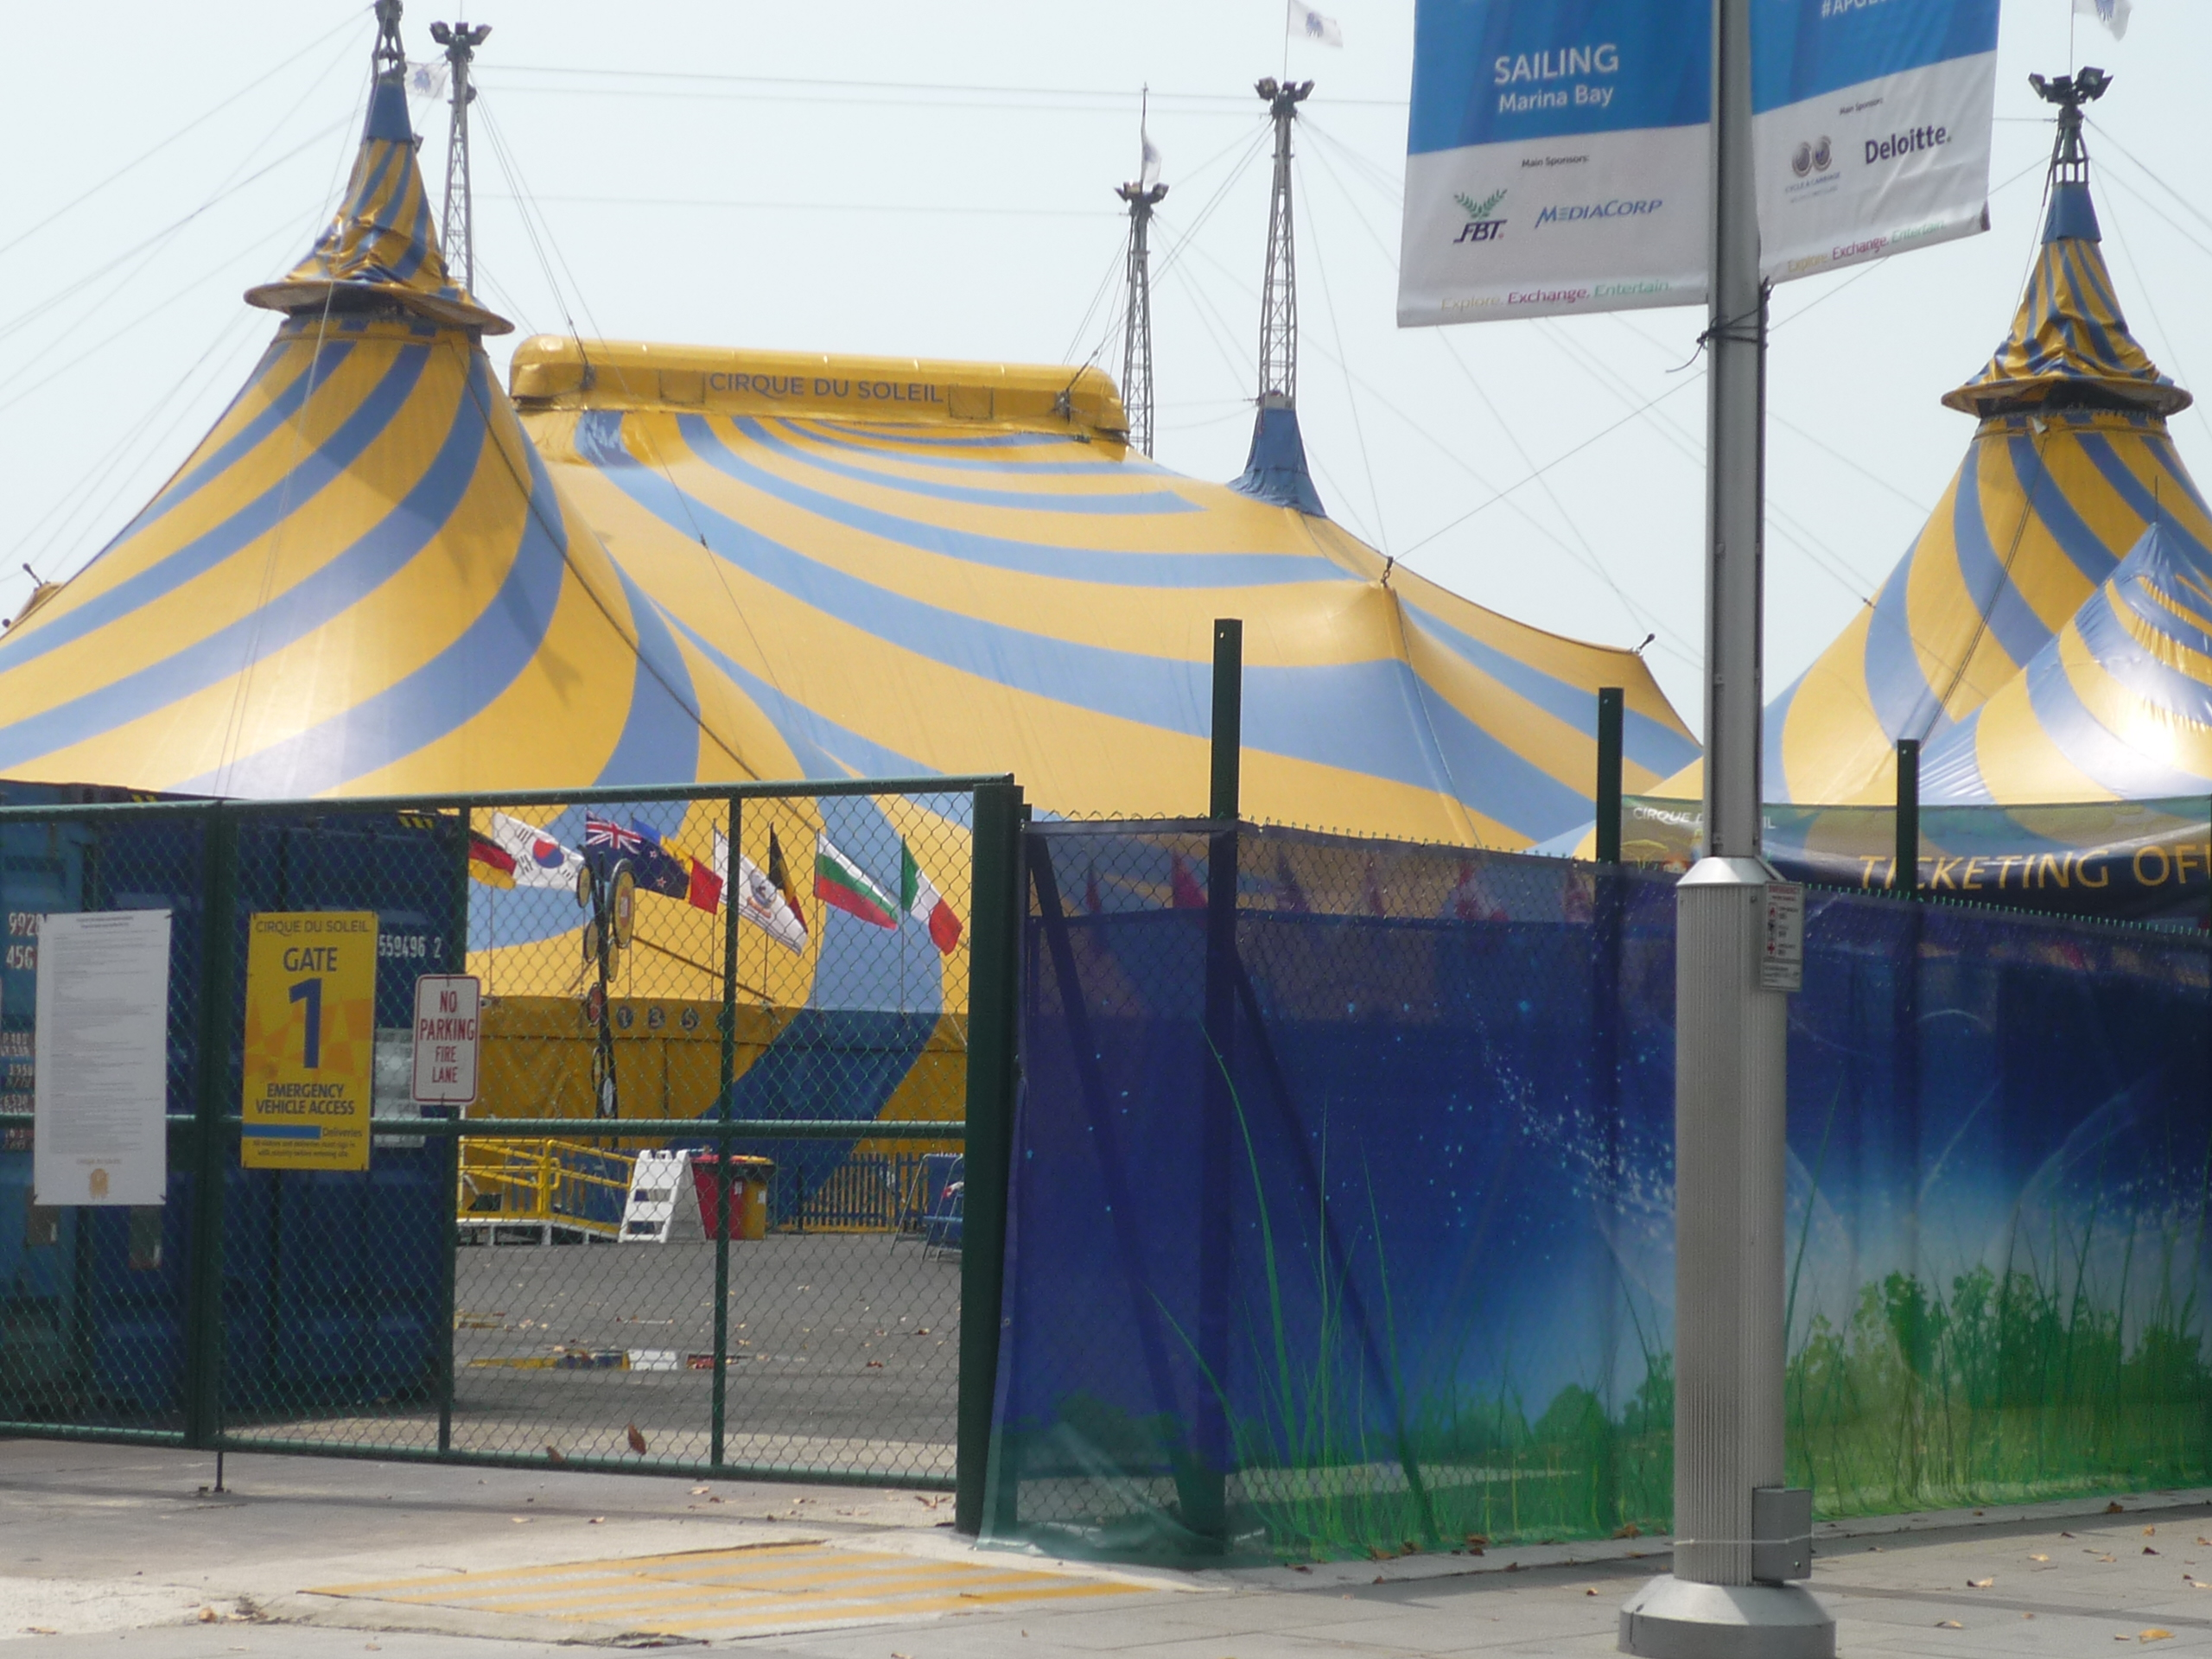 Our excitements rose instantly when we saw the series of bright yellow-with-blue-stripes tents. The tents didnu0027t appear too big from the outside though - we ... & Cirque du Soleil TOTEM: 2 Hours of Surrealism Under The Big Top ...